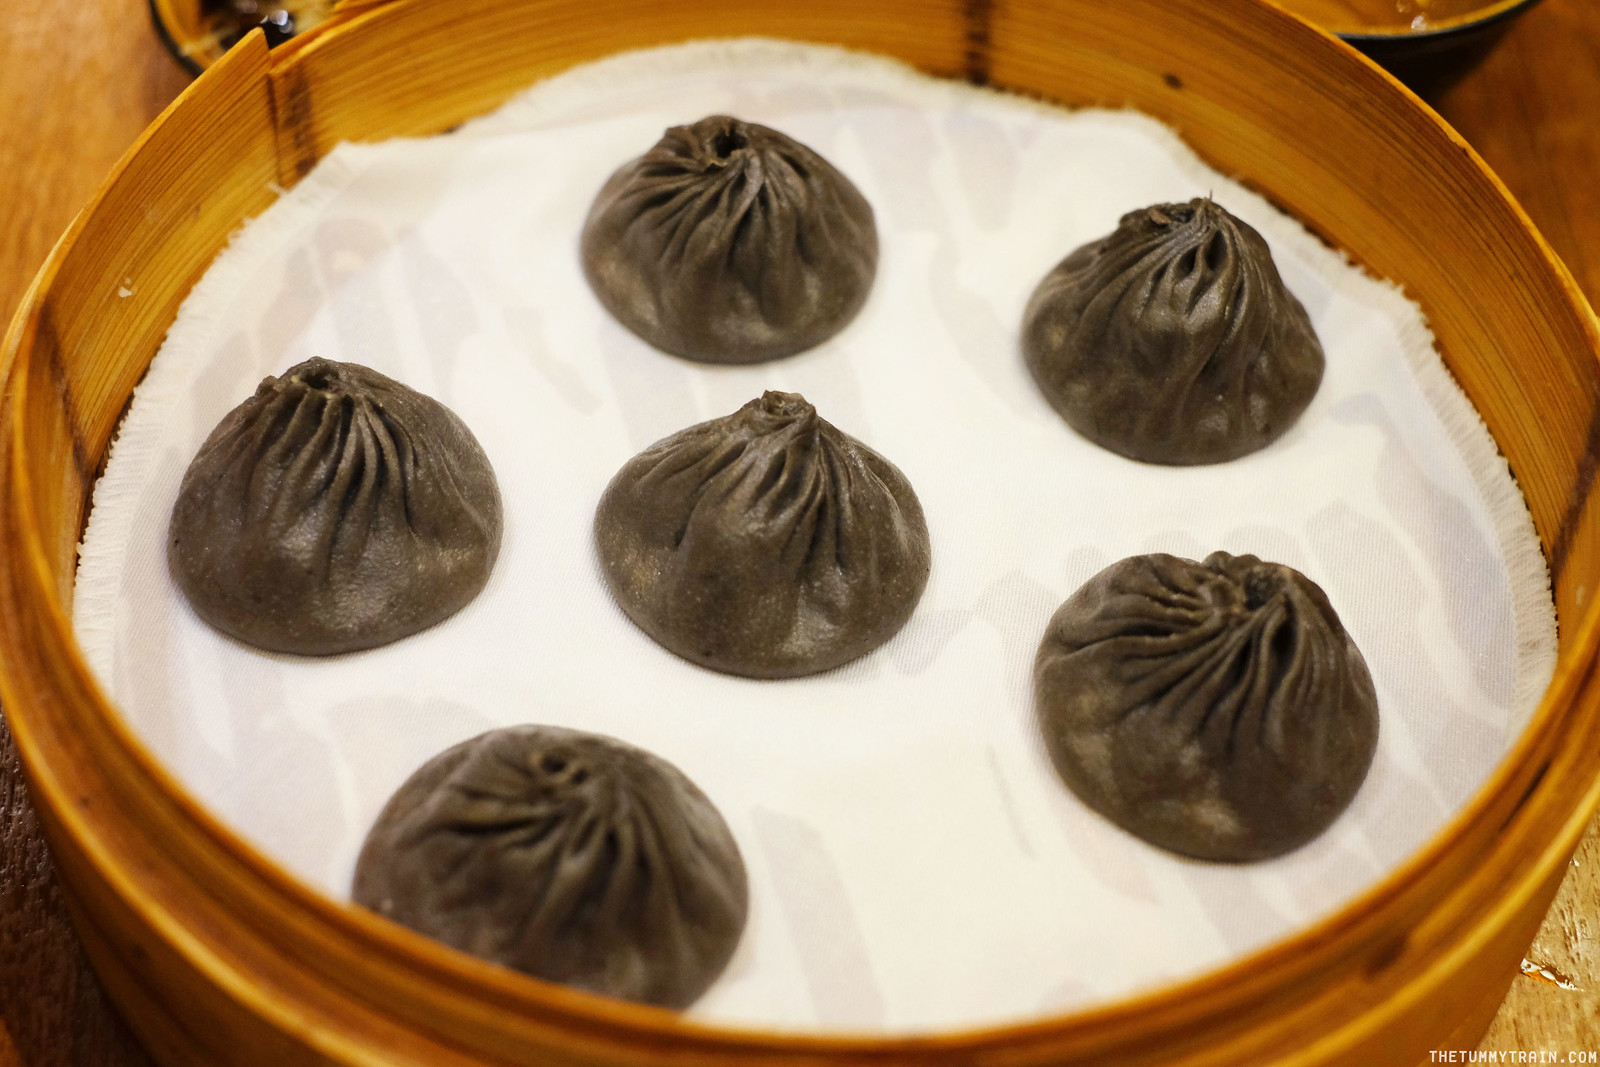 33060934121 c7997af270 h - Sampling the famous colourful xiao long bao at Paradise Dynasty S Maison